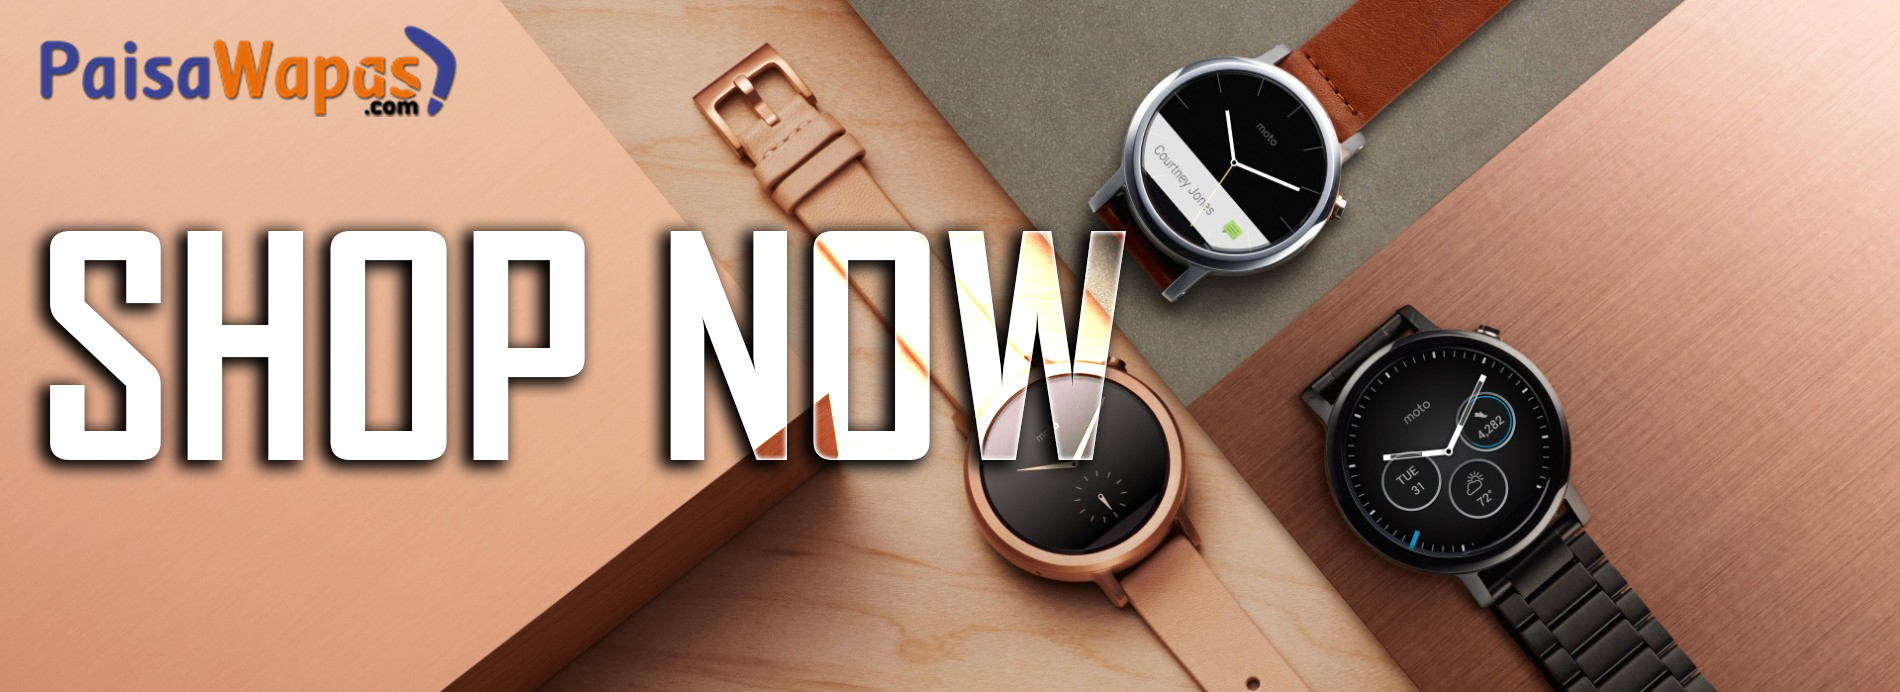 Buy Moto 360 smartwatch at paisawapas.com